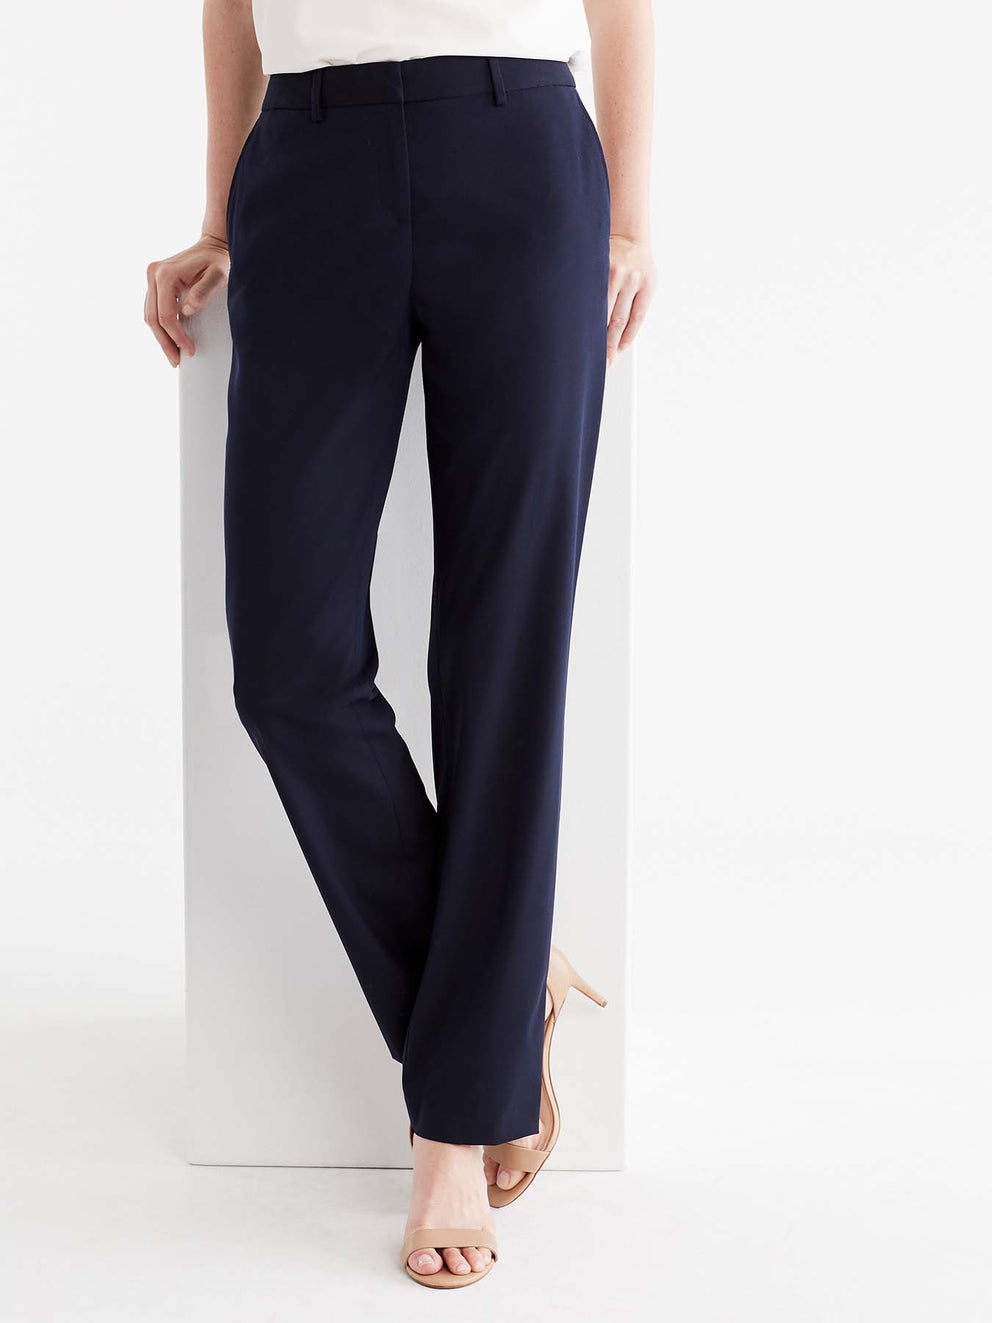 The Jones New York Washable Sydney Pant in color Navy - Image Position 1